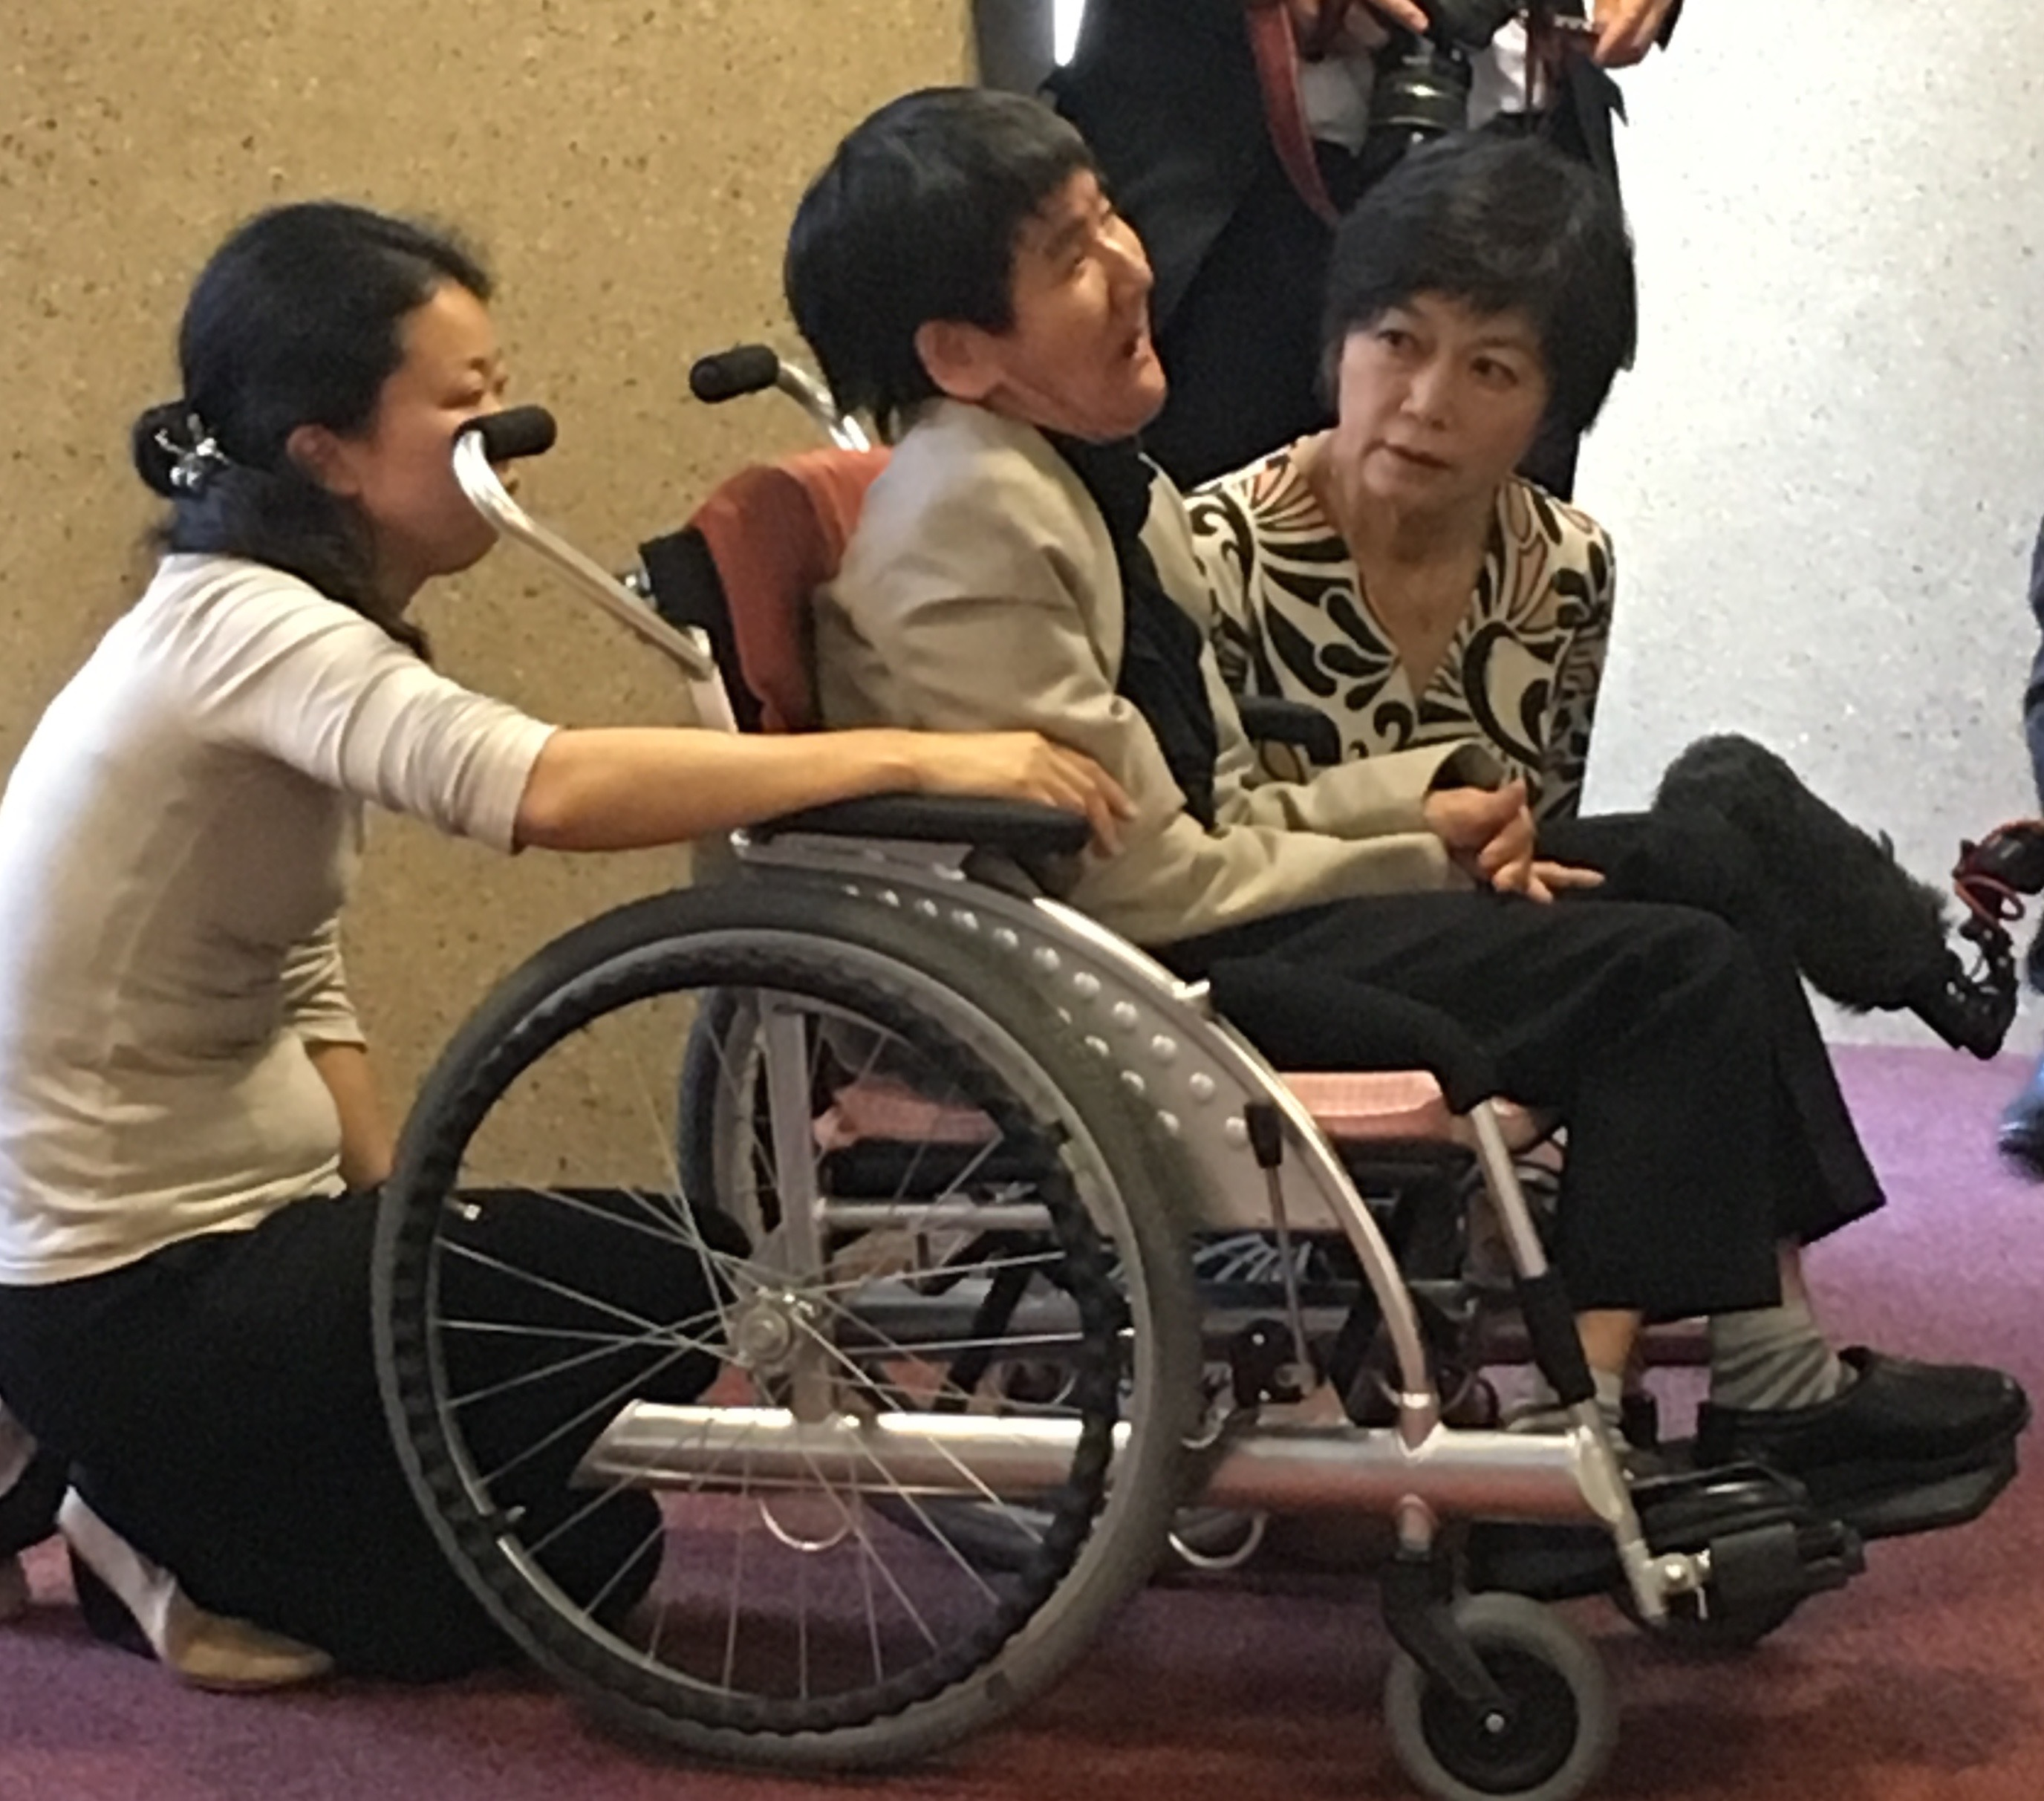 Shinobu Sakamoto, Minamata Disease survivor and long-time activist, along with Yu Tani (Carer) and Hiroko Saisho (translator).